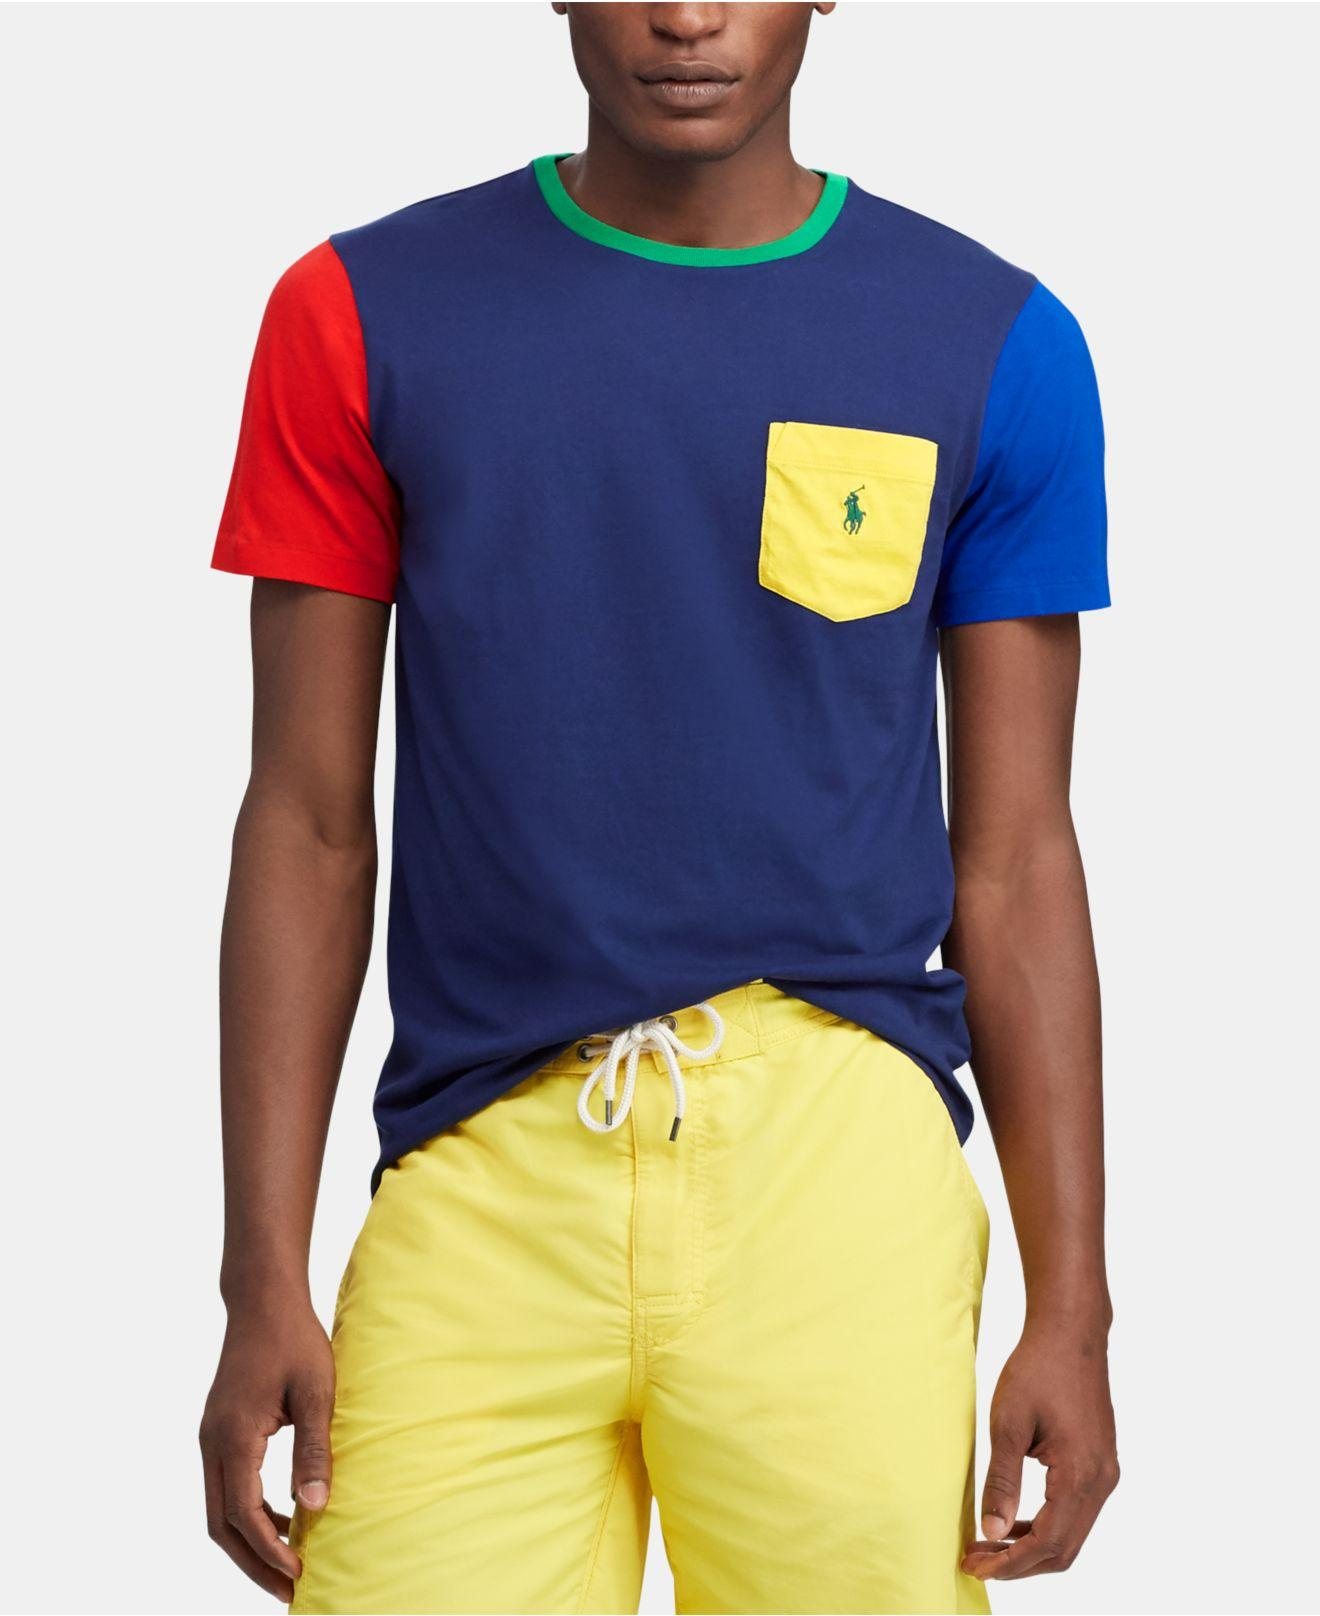 b48510e47 Lyst - Polo Ralph Lauren Colorblocked T-shirt in Blue for Men - Save 41%